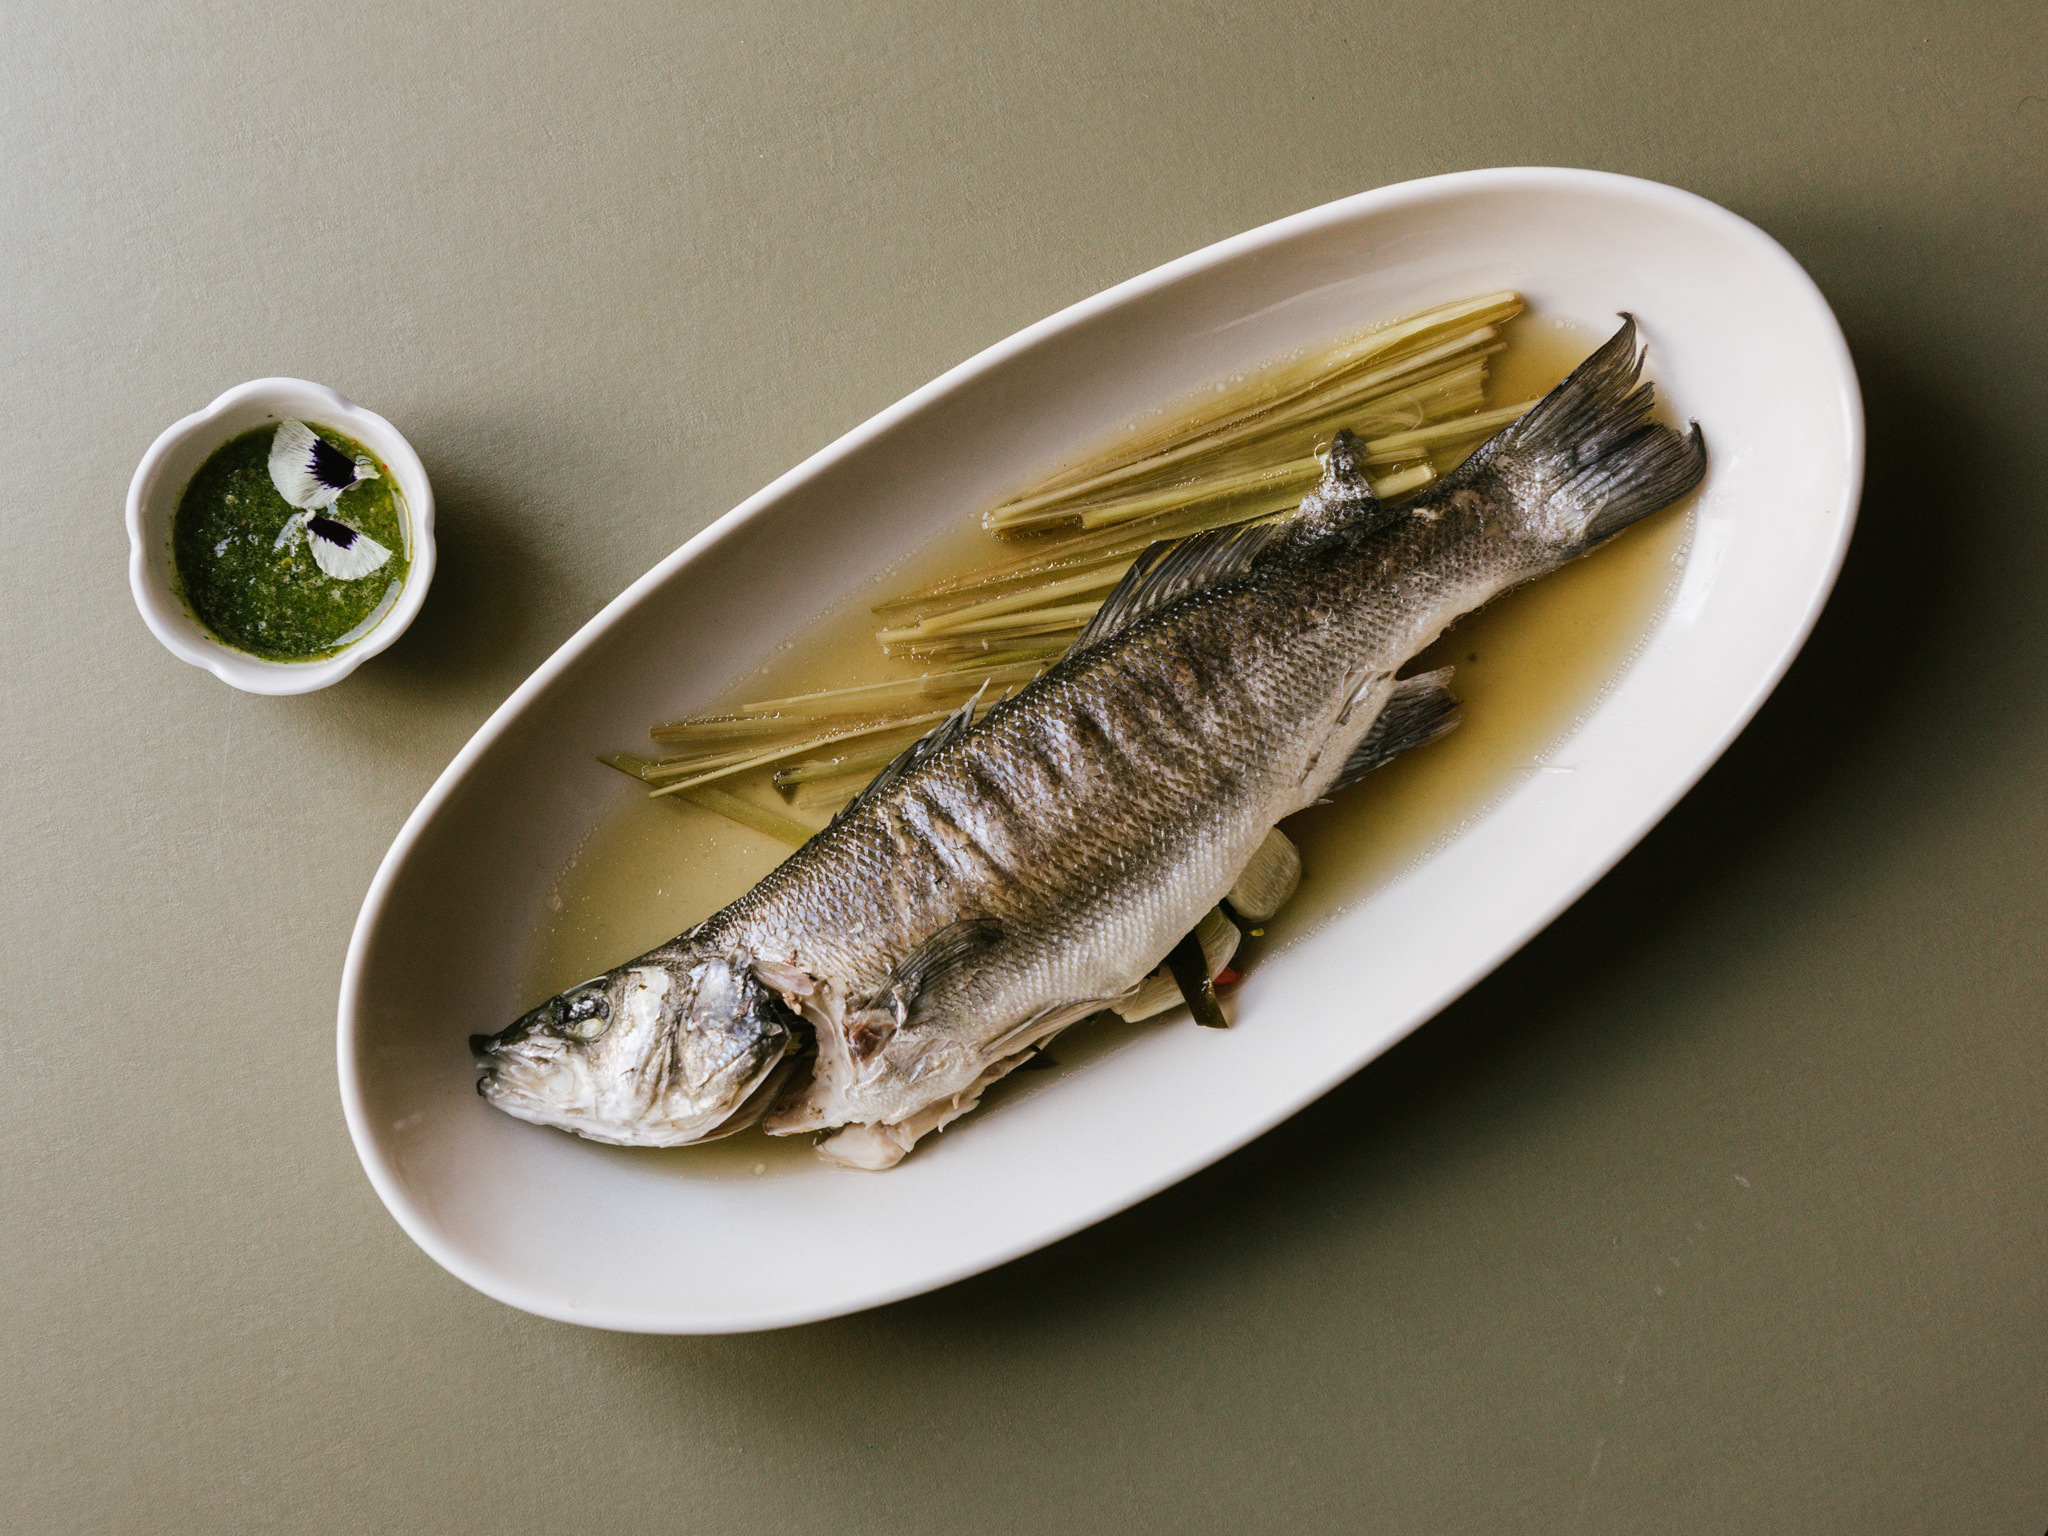 A whole fish at Kin Dee restaurant in Berlin